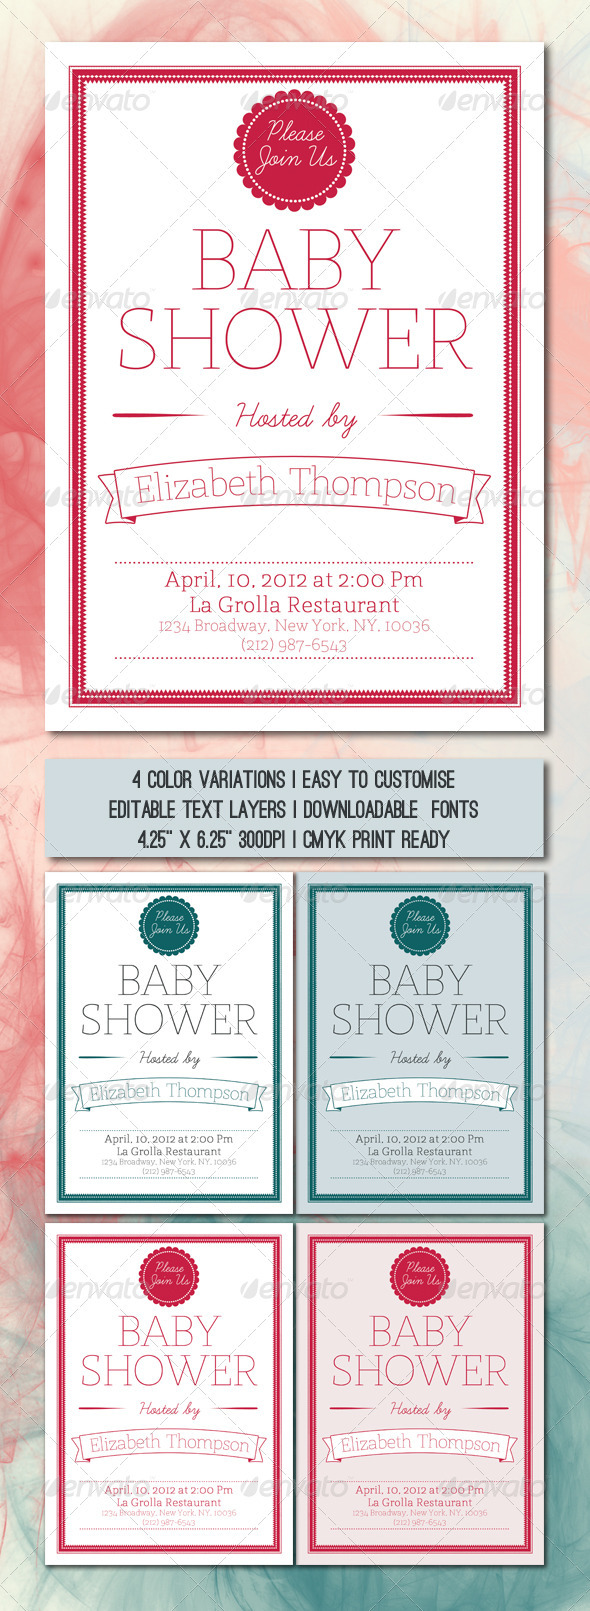 Baby Shower Card Template - Invitations Cards & Invites